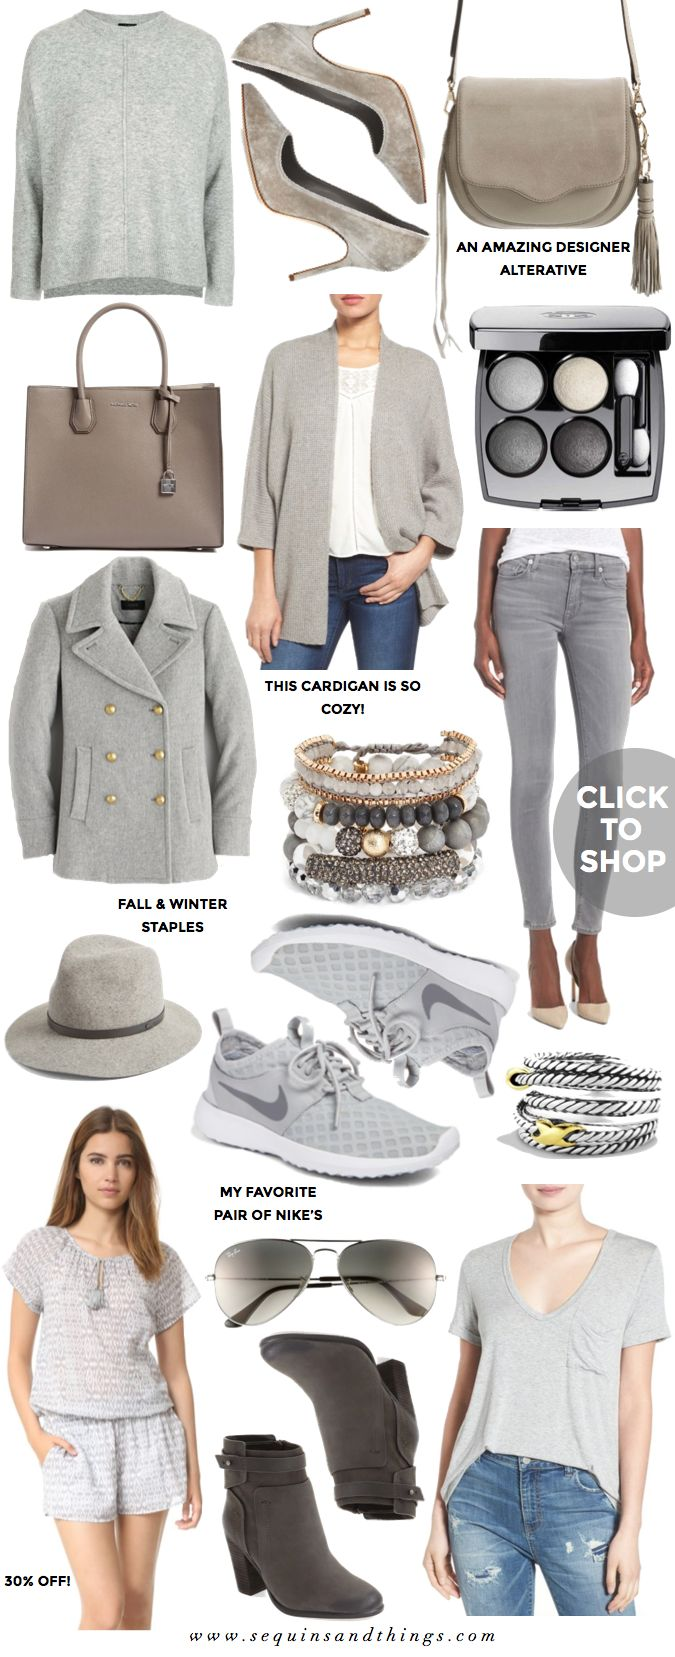 THE BEST FALL NEUTRAL: GRAY